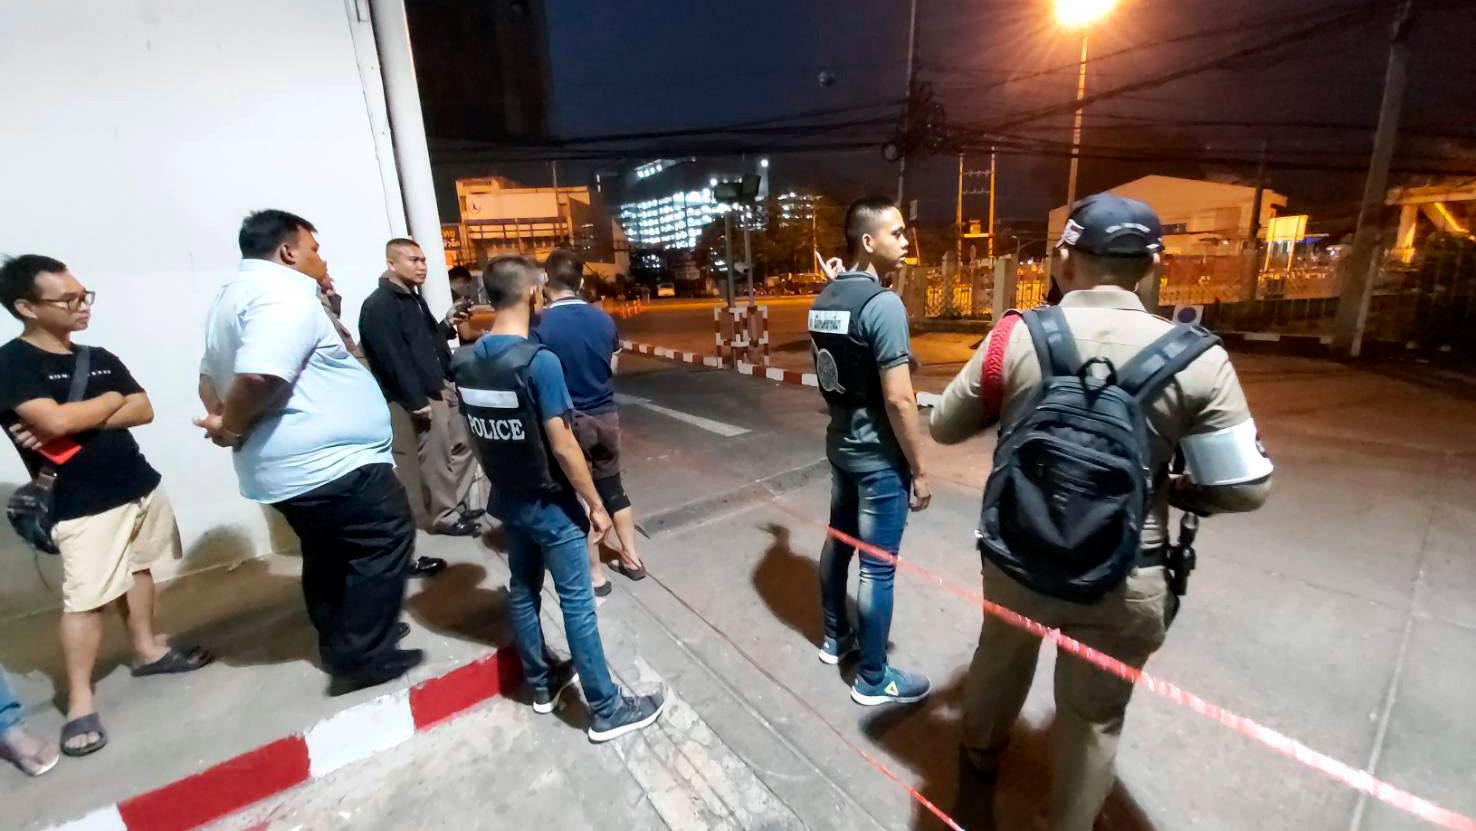 Thai army sergeant who killed at least 26 shot dead in mall, officials say